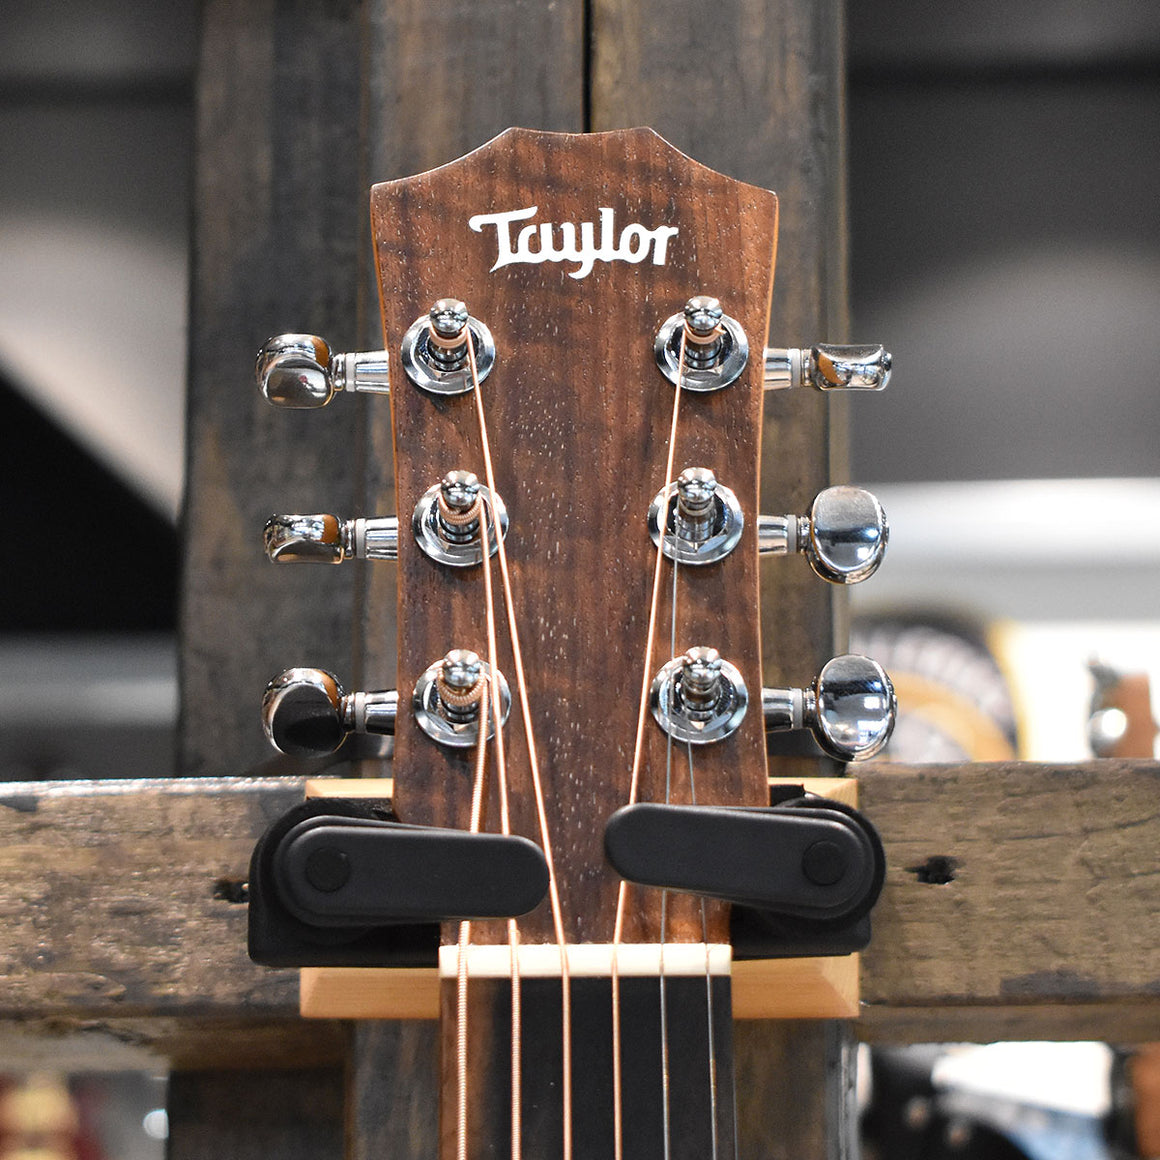 Baby Taylor Mahogany BT2 Left Handed Acoustic Guitar with Taylor gig bag